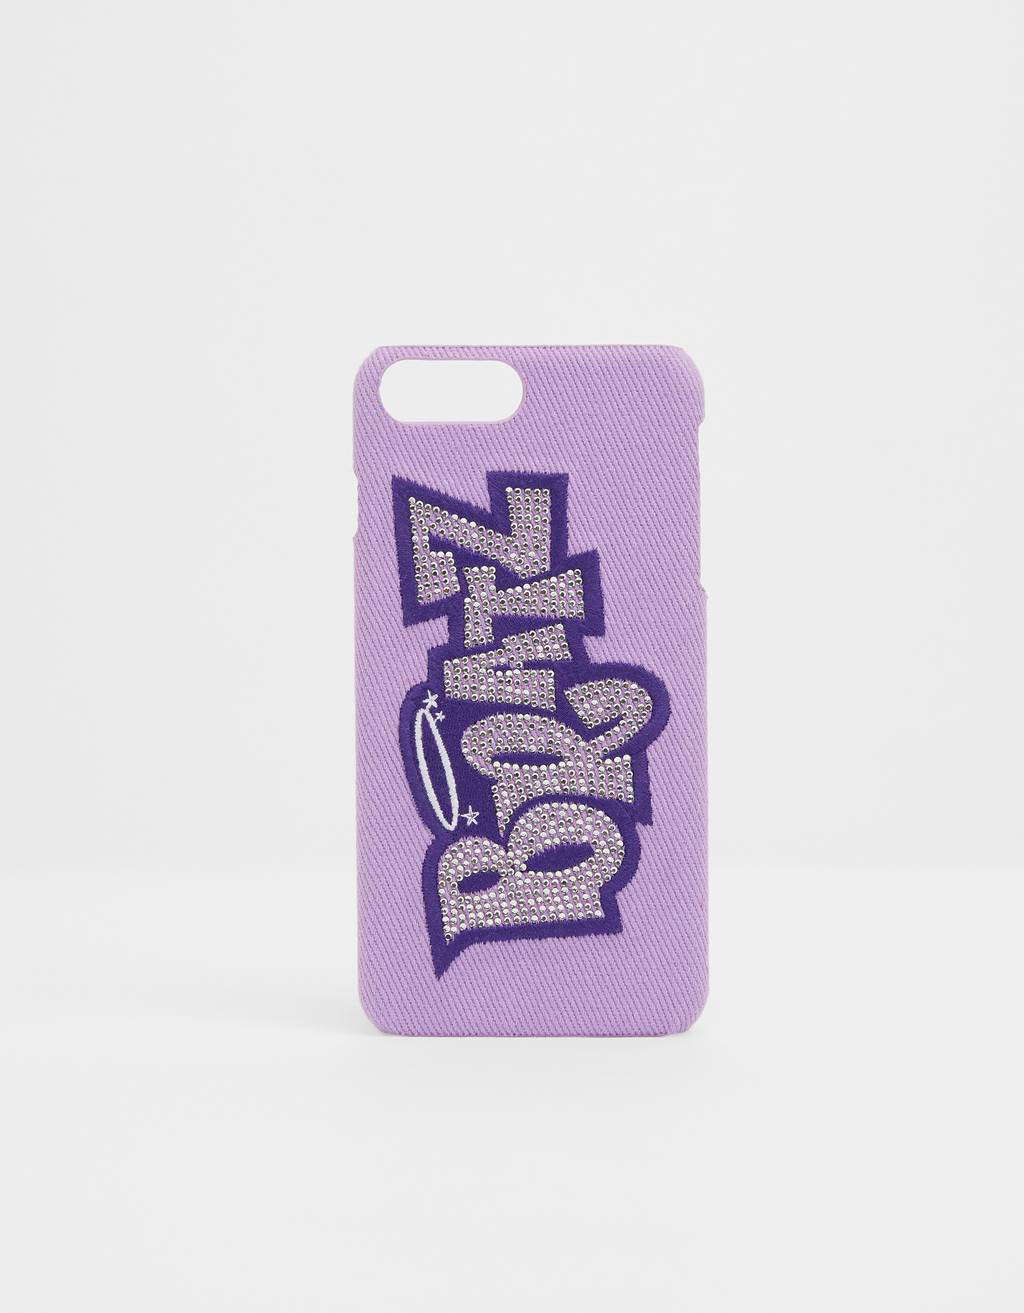 Bratz iPhone 6 Plus / 7 Plus / 8 Plus case